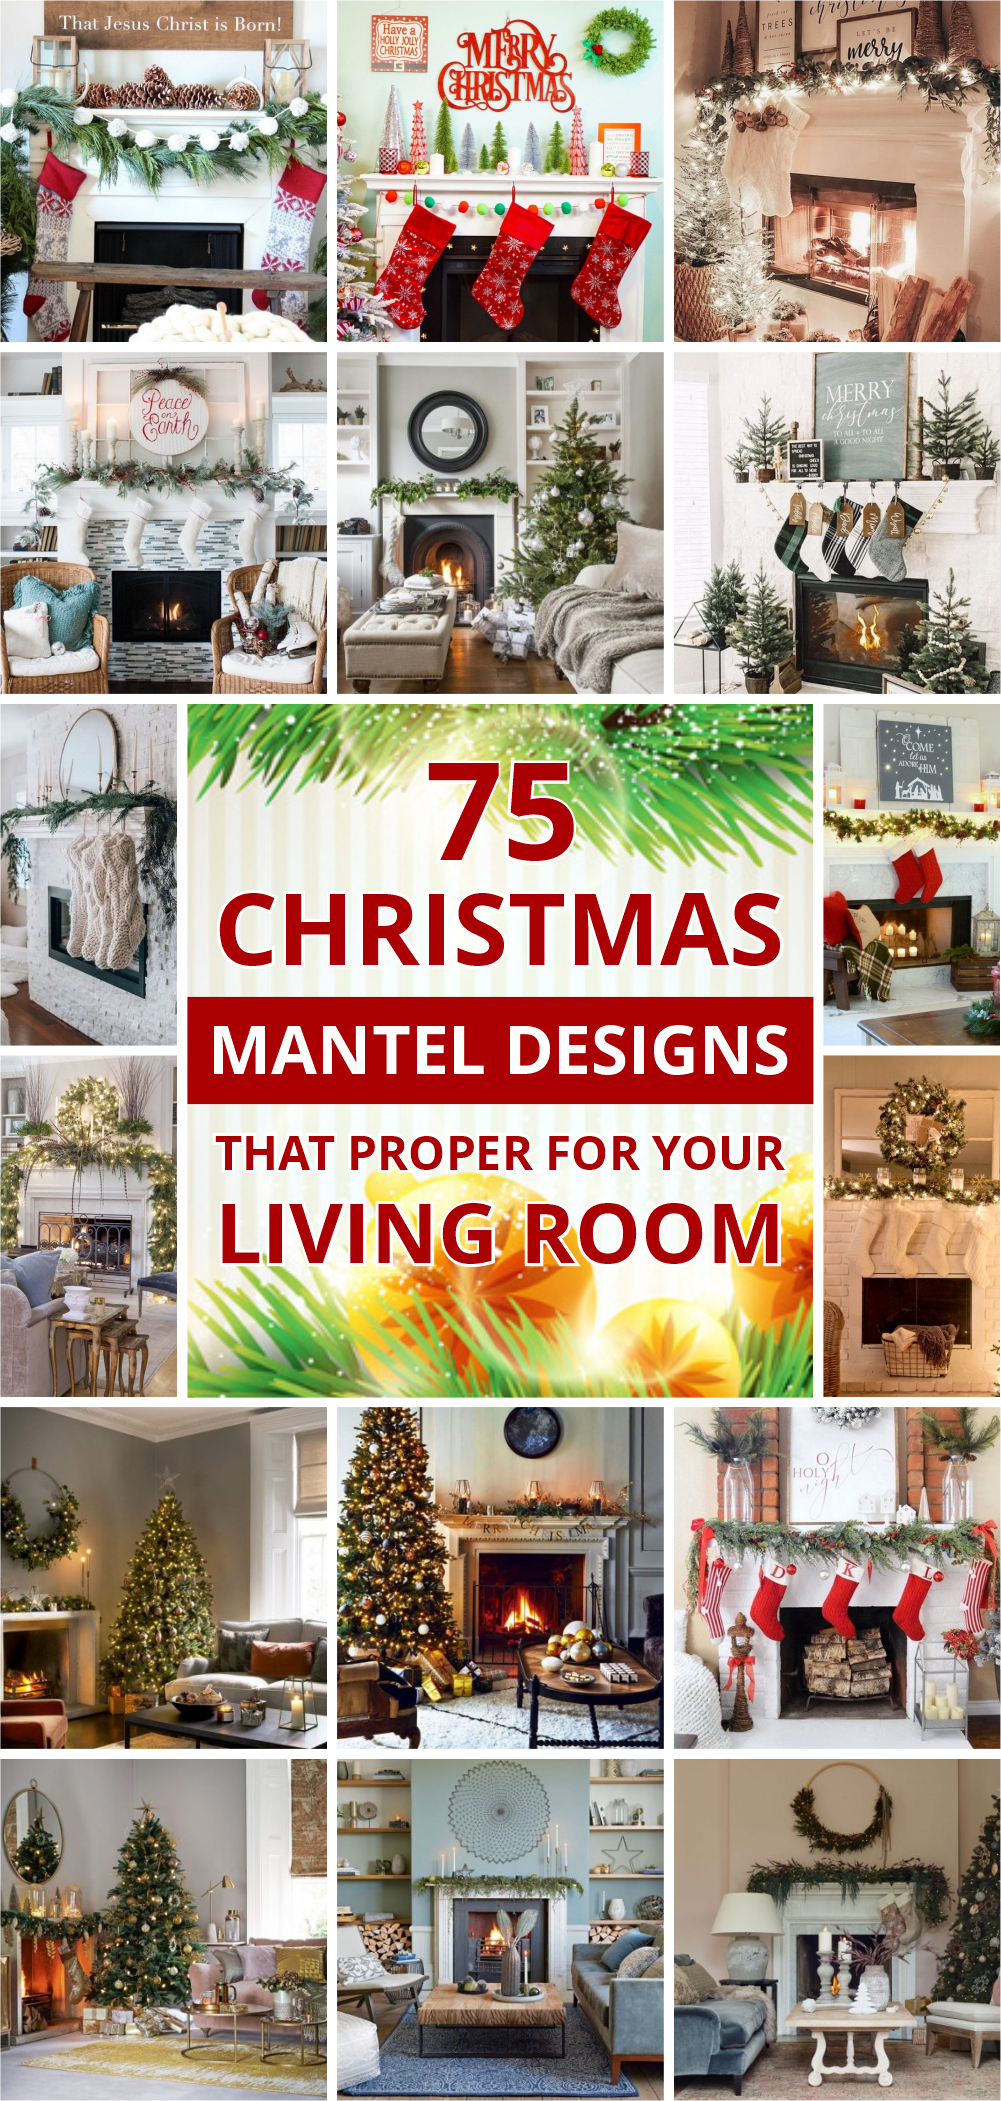 75 christmas mantel designs that proper for your living room 1